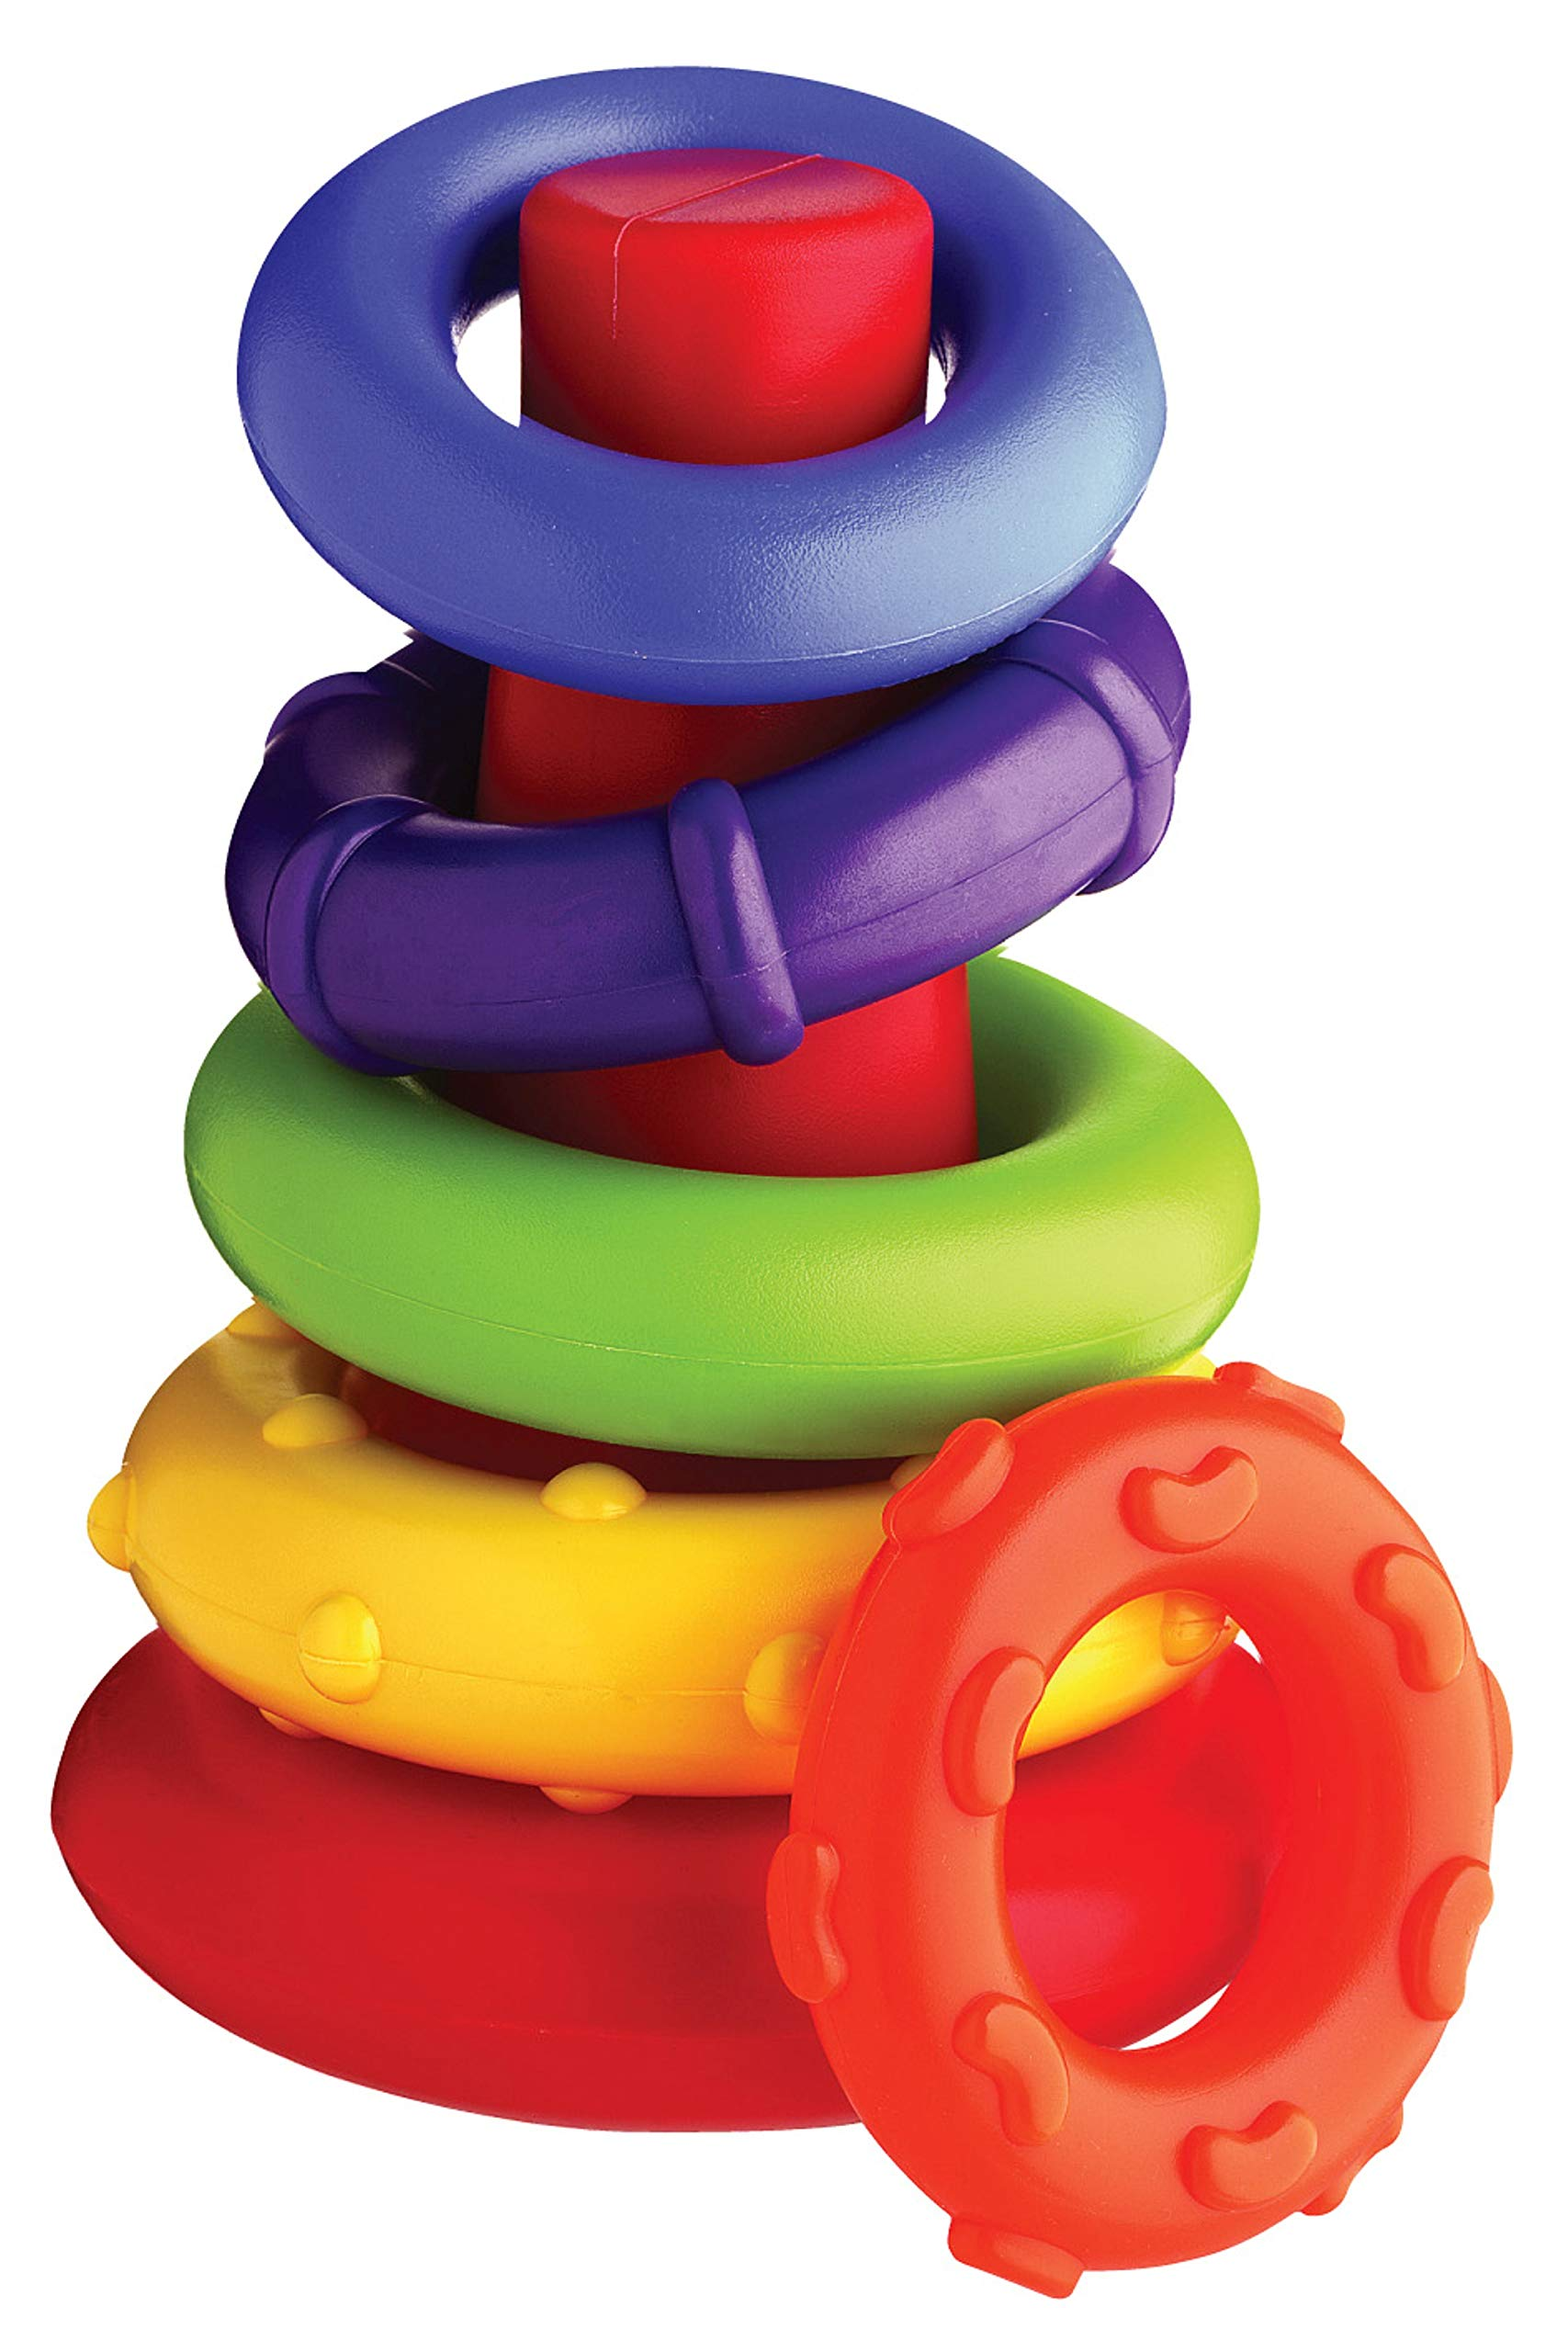 Playgro Sort and Stack Tower for baby infant toddler children 4011455, Playgro is Encouraging Imagination with STEM/STEM for a bright future - Great start for a world of learning